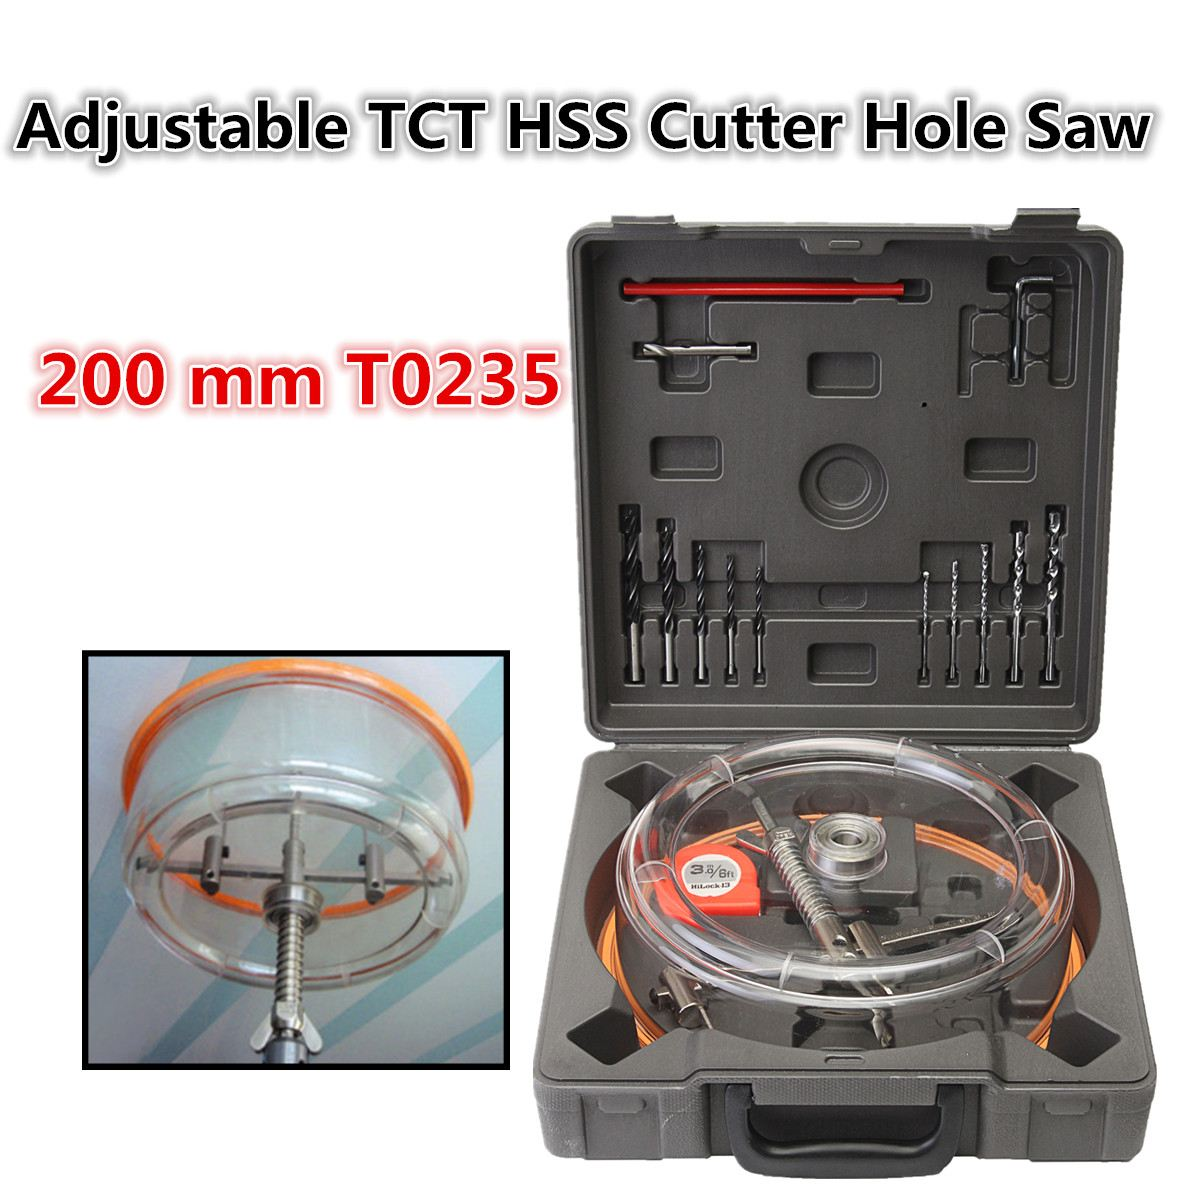 1Set High Quality Adjustable Downlight Holesaw Ceiling Wall TCT HSS Cutter Hole Saw 200 mm T0235 pegasi high quality 5pcs 50 sizes hss